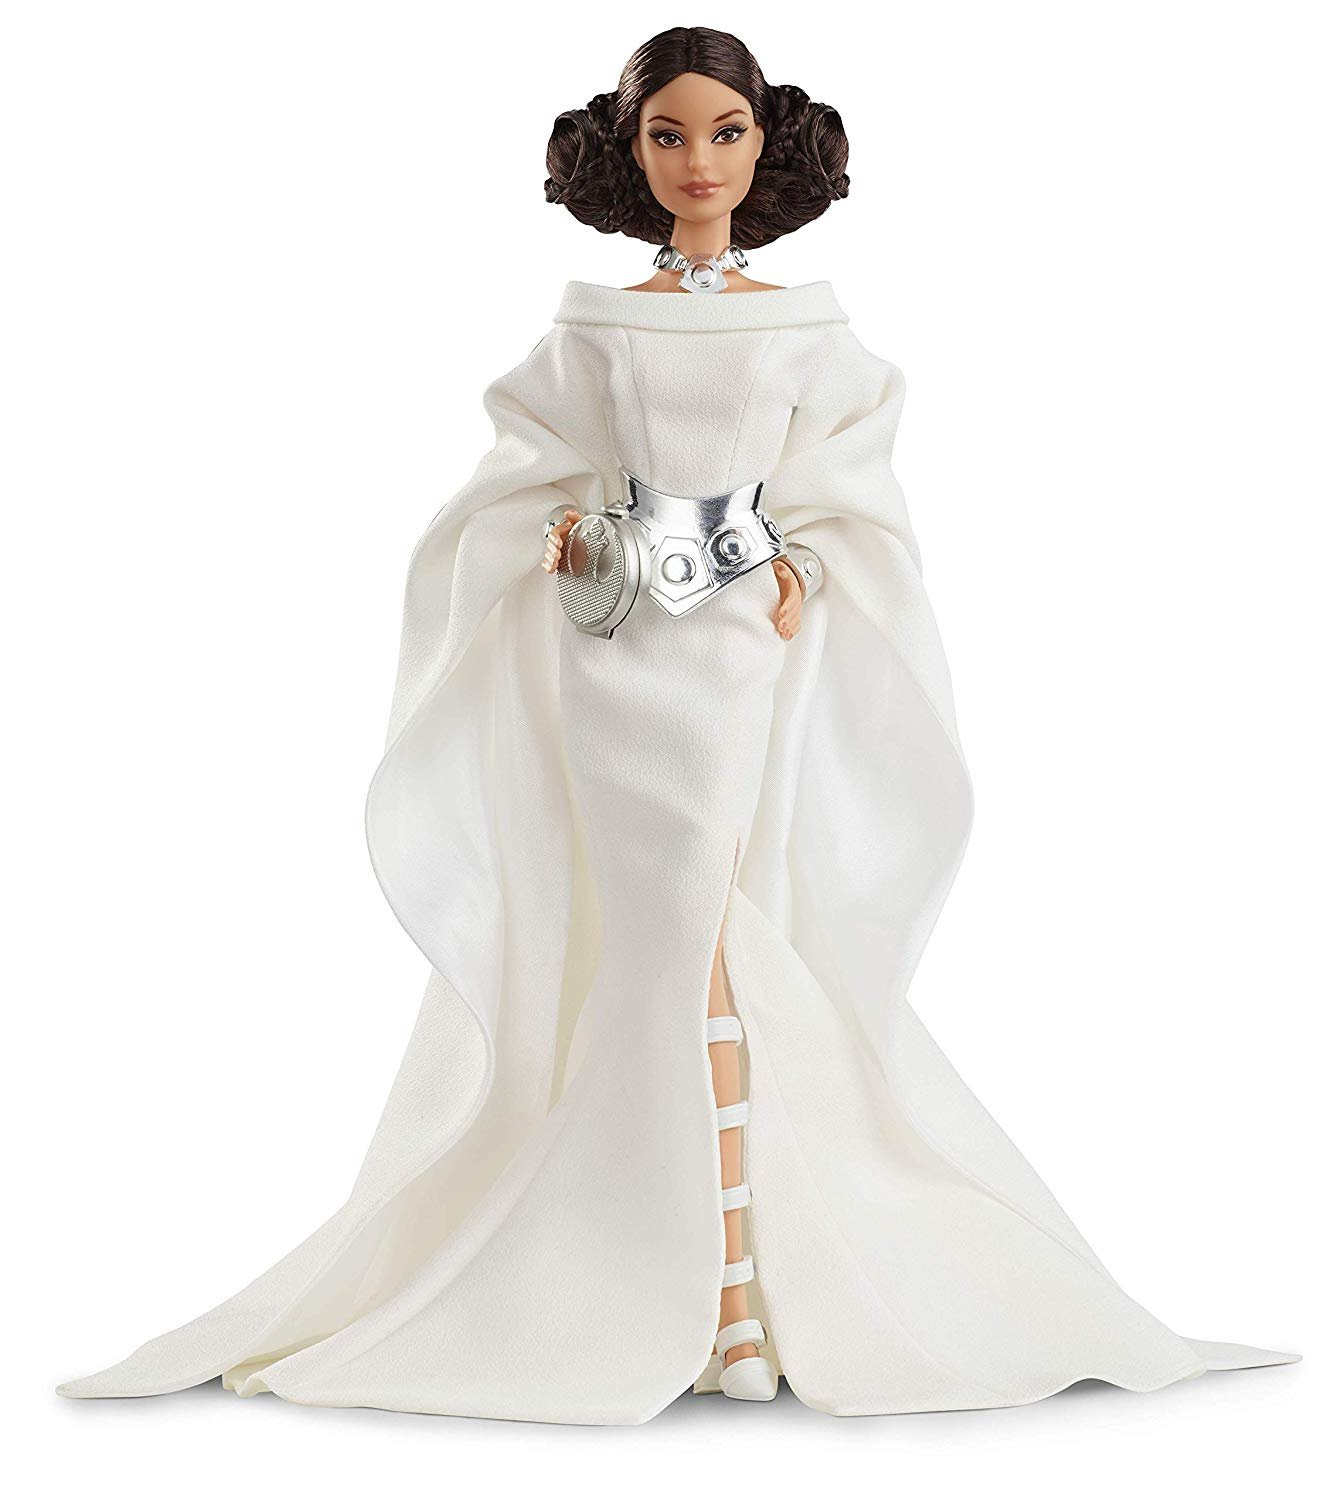 Star Wars Princess Leia Barbie Doll